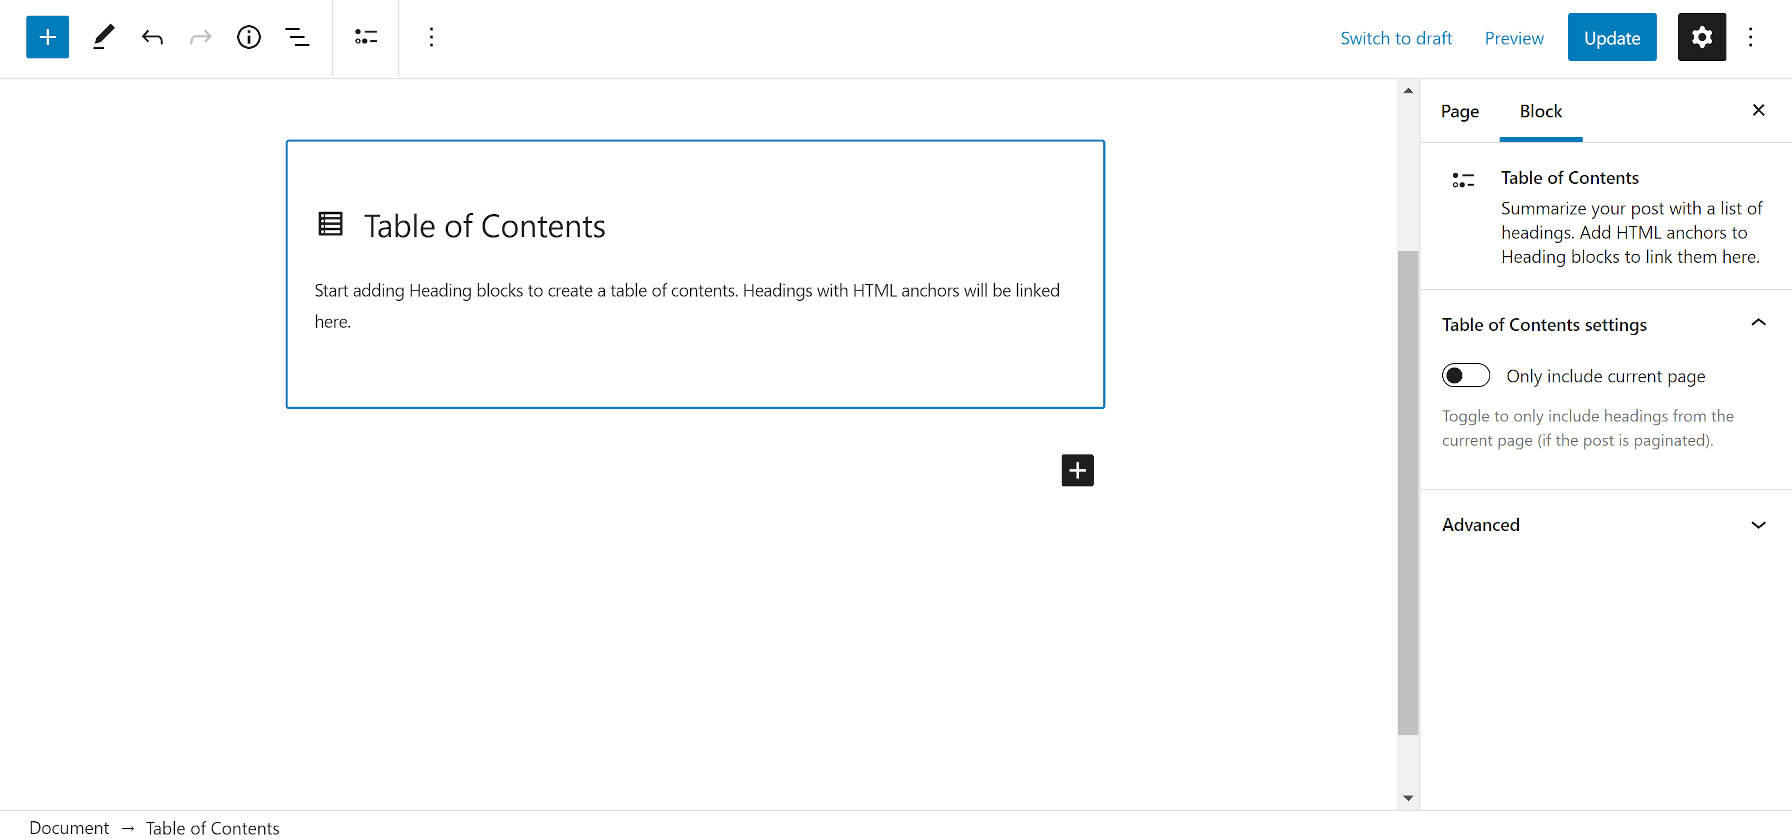 Initial state of the Table of Contents block, displaying a helper message to add Headings with HTML anchors.